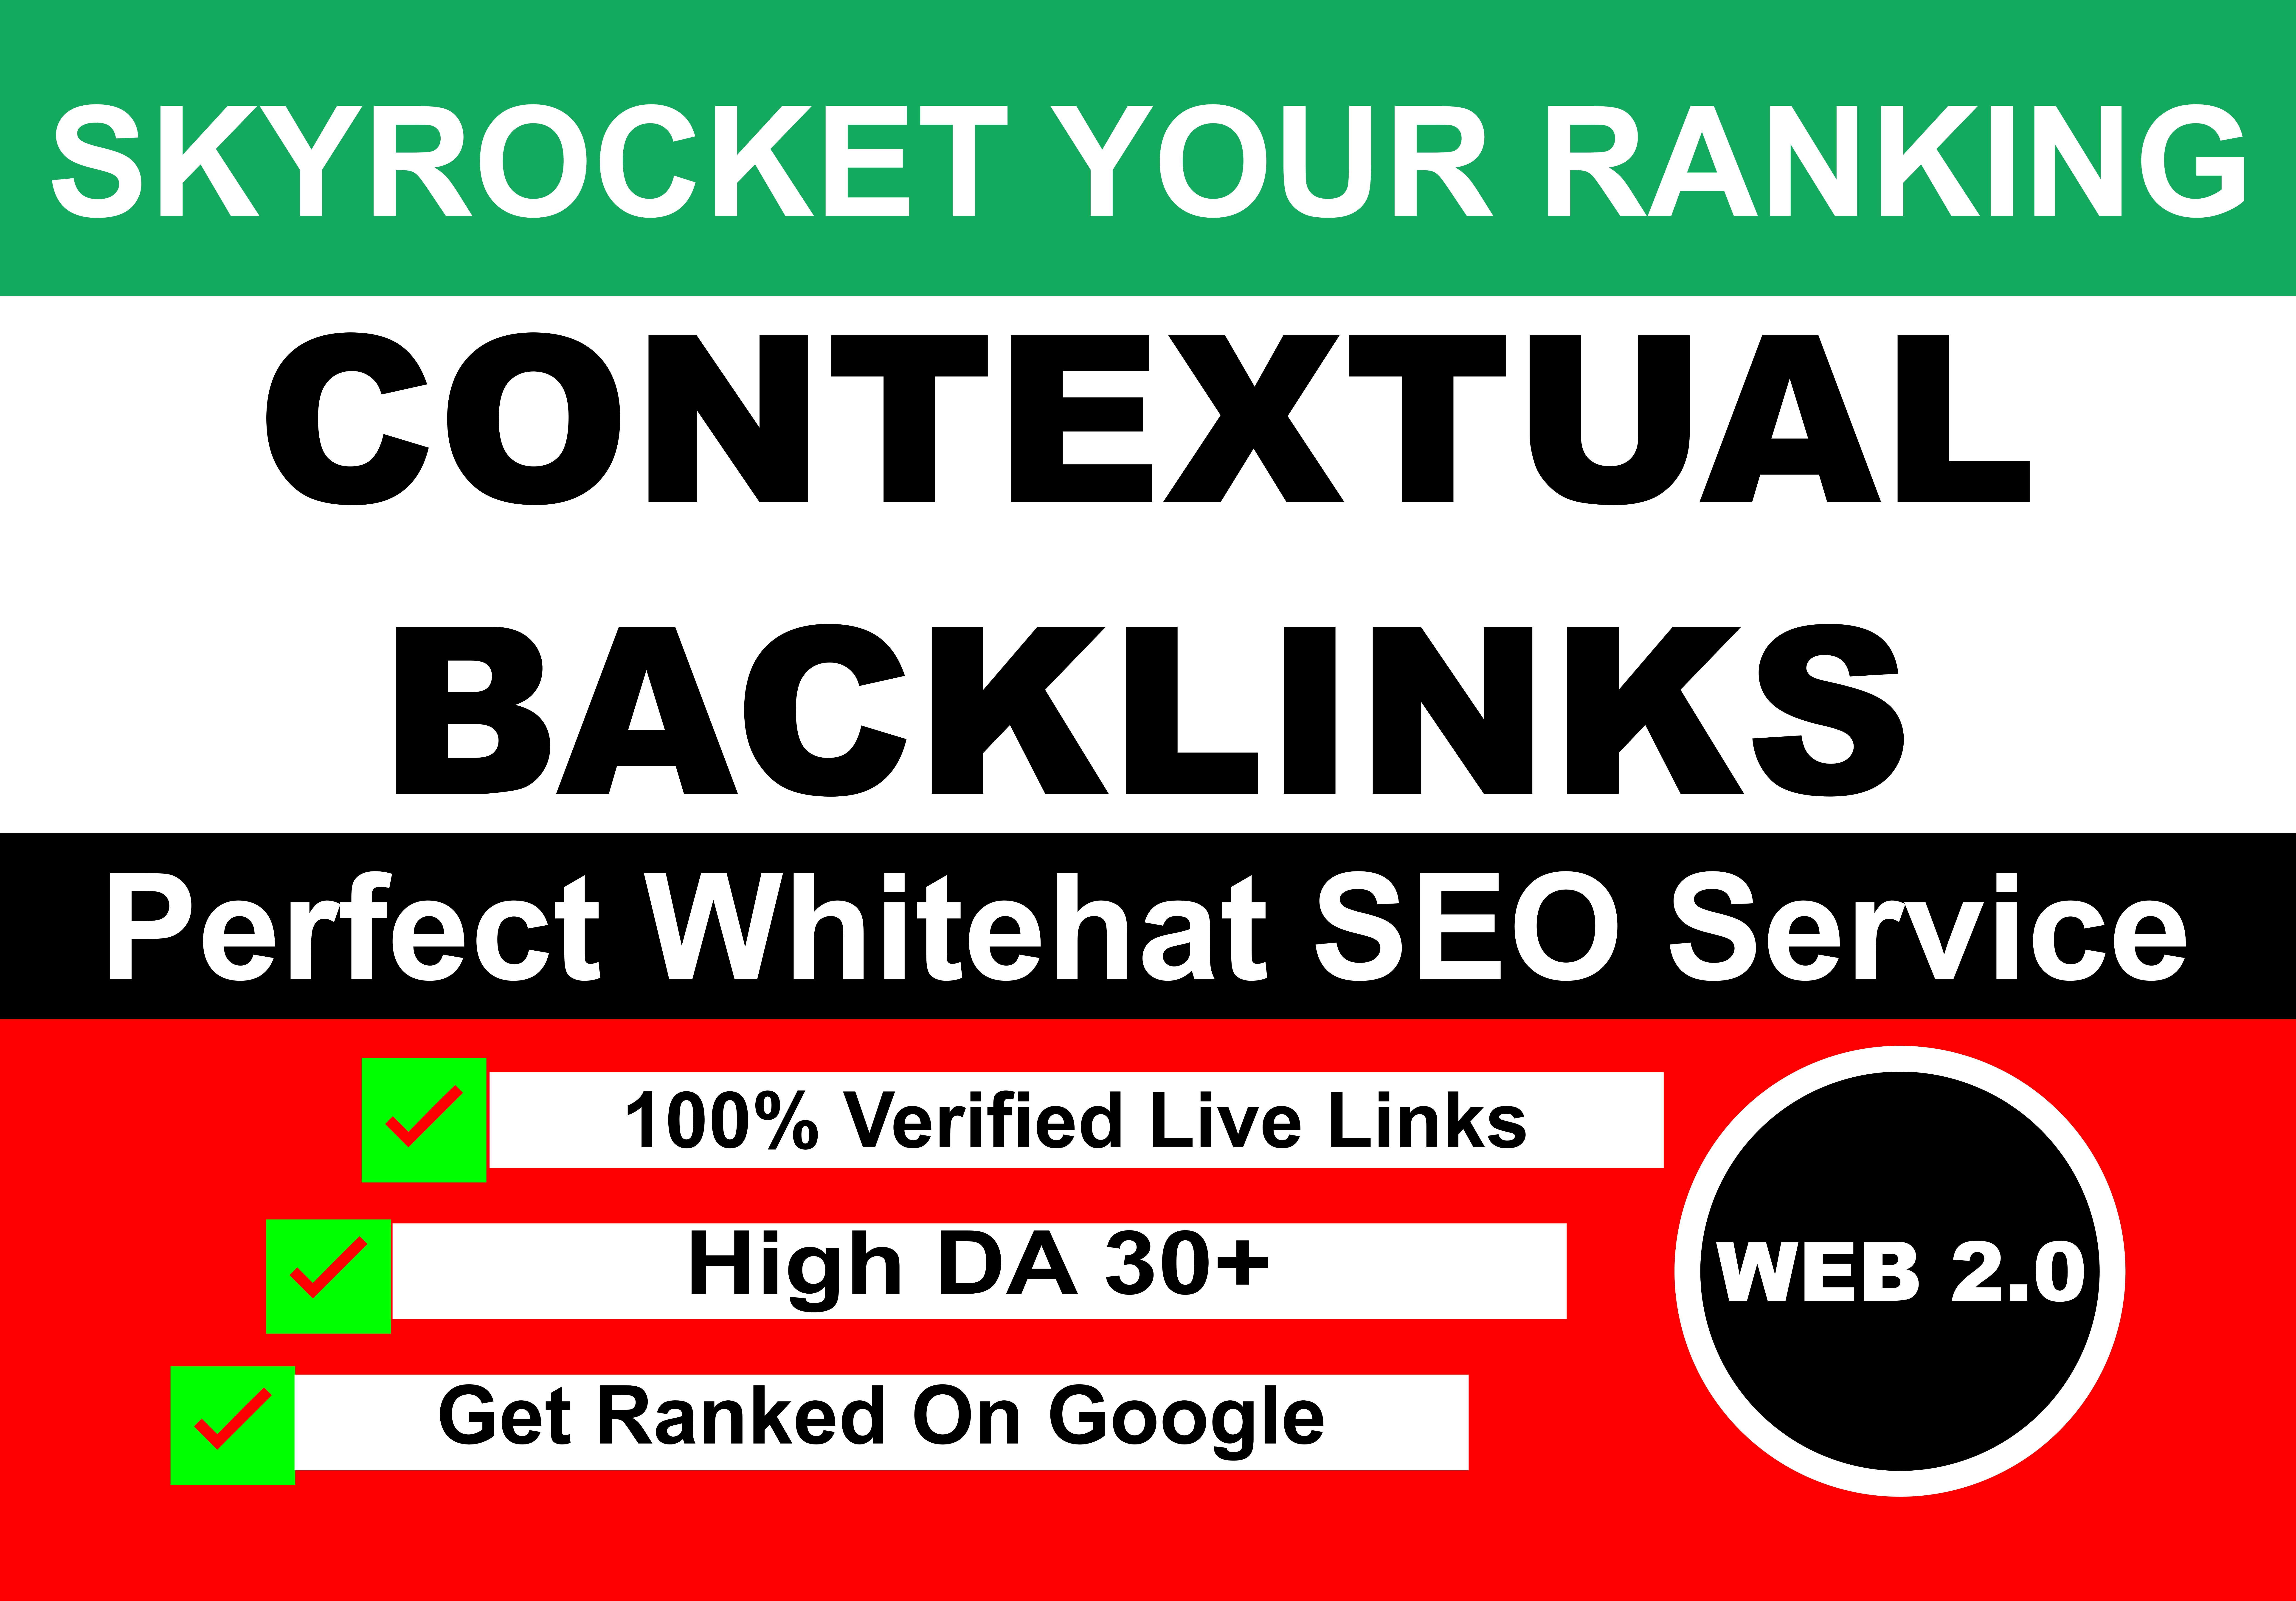 Rank Higher On Google With High Da Contextual Backlinks